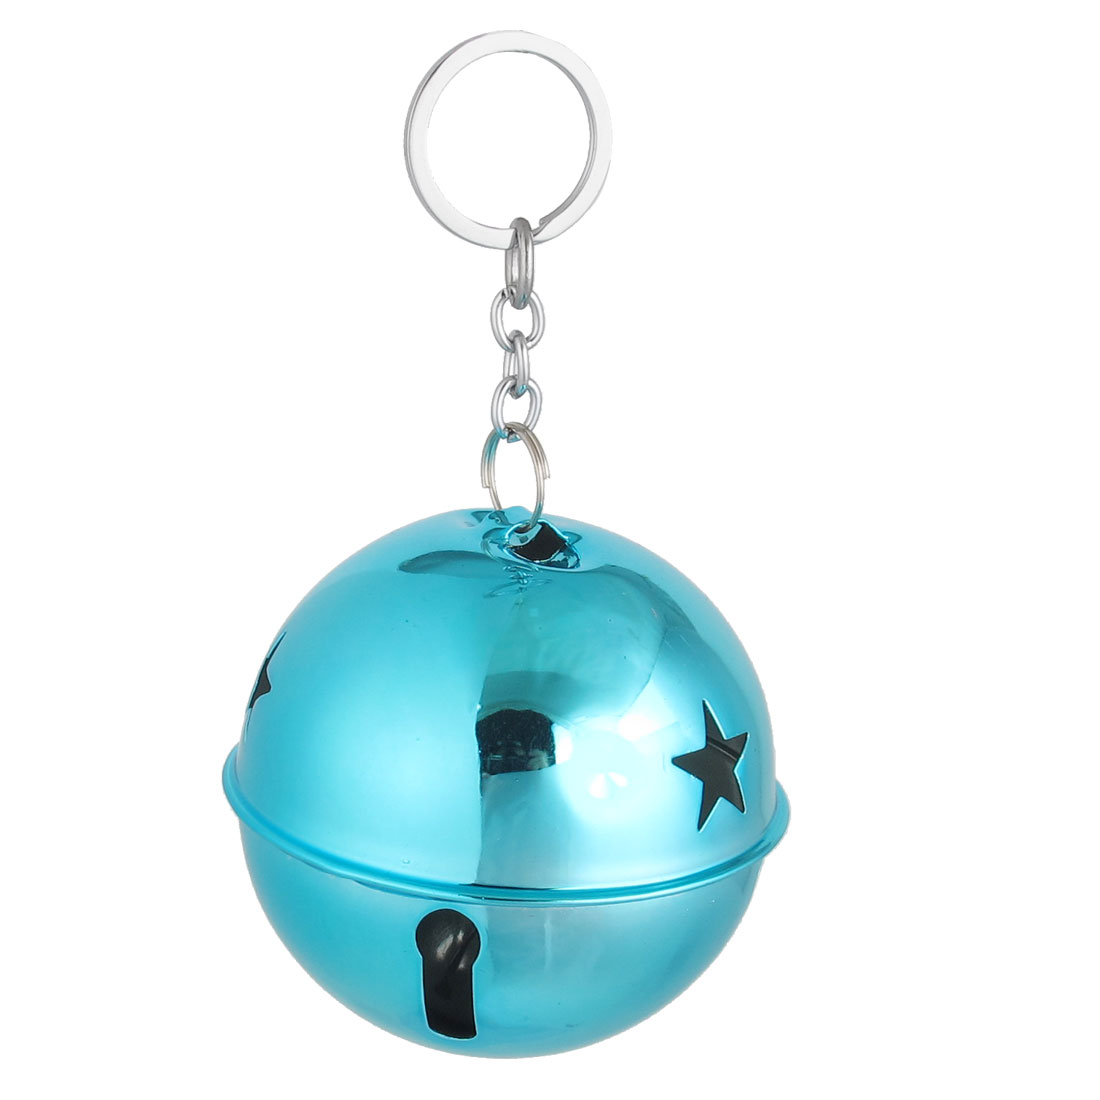 Xmas Purse Metal Hollow Design Keychain Ring Bell Ornament Teal Blue 80mm Dia